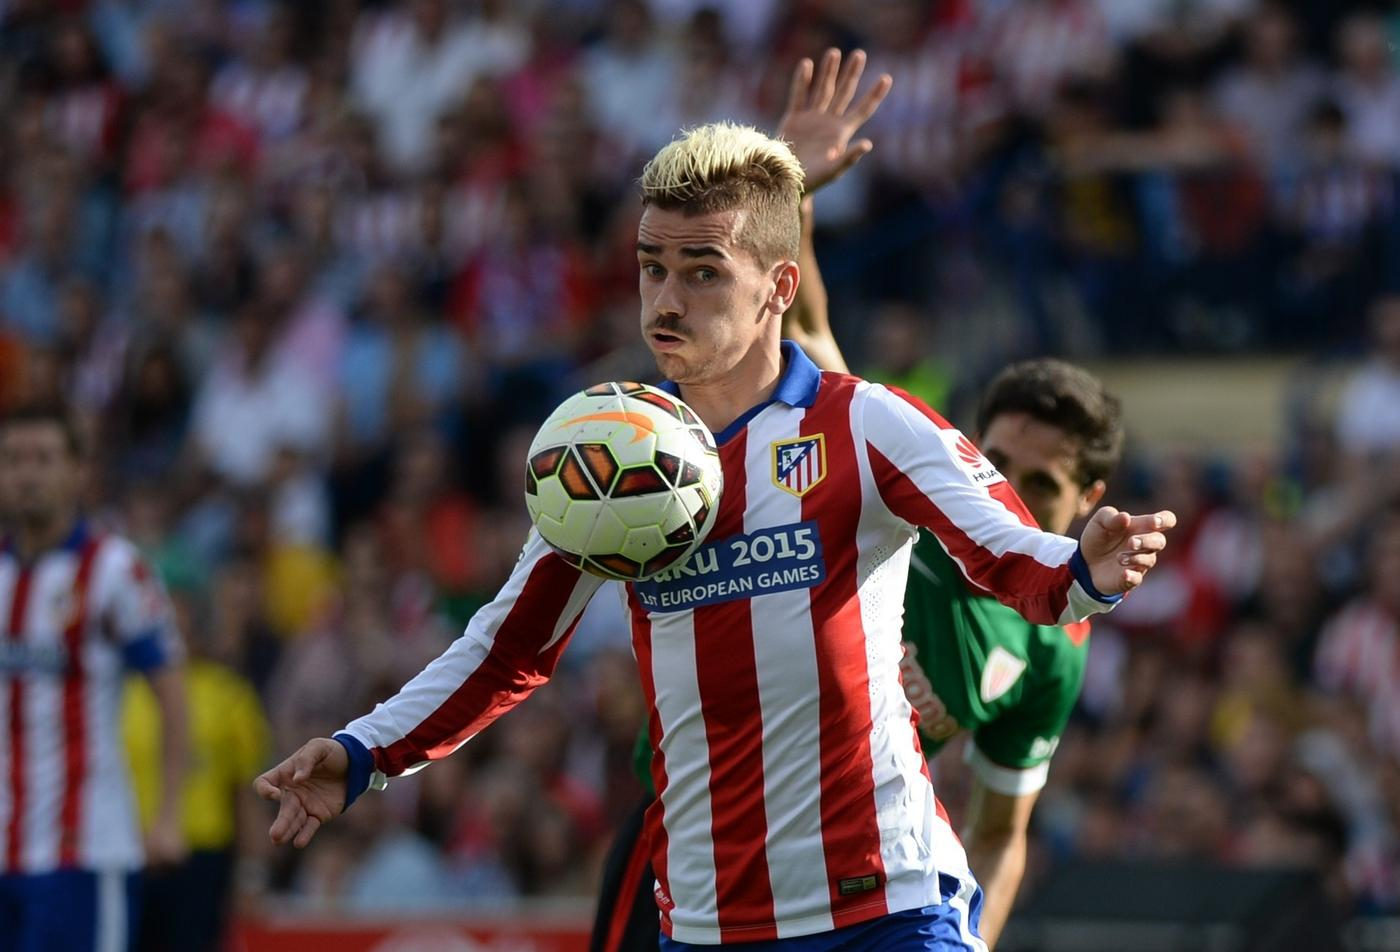 Signing Antoine Griezmann could mean the end for players like Loic Remy at Chelsea this summer